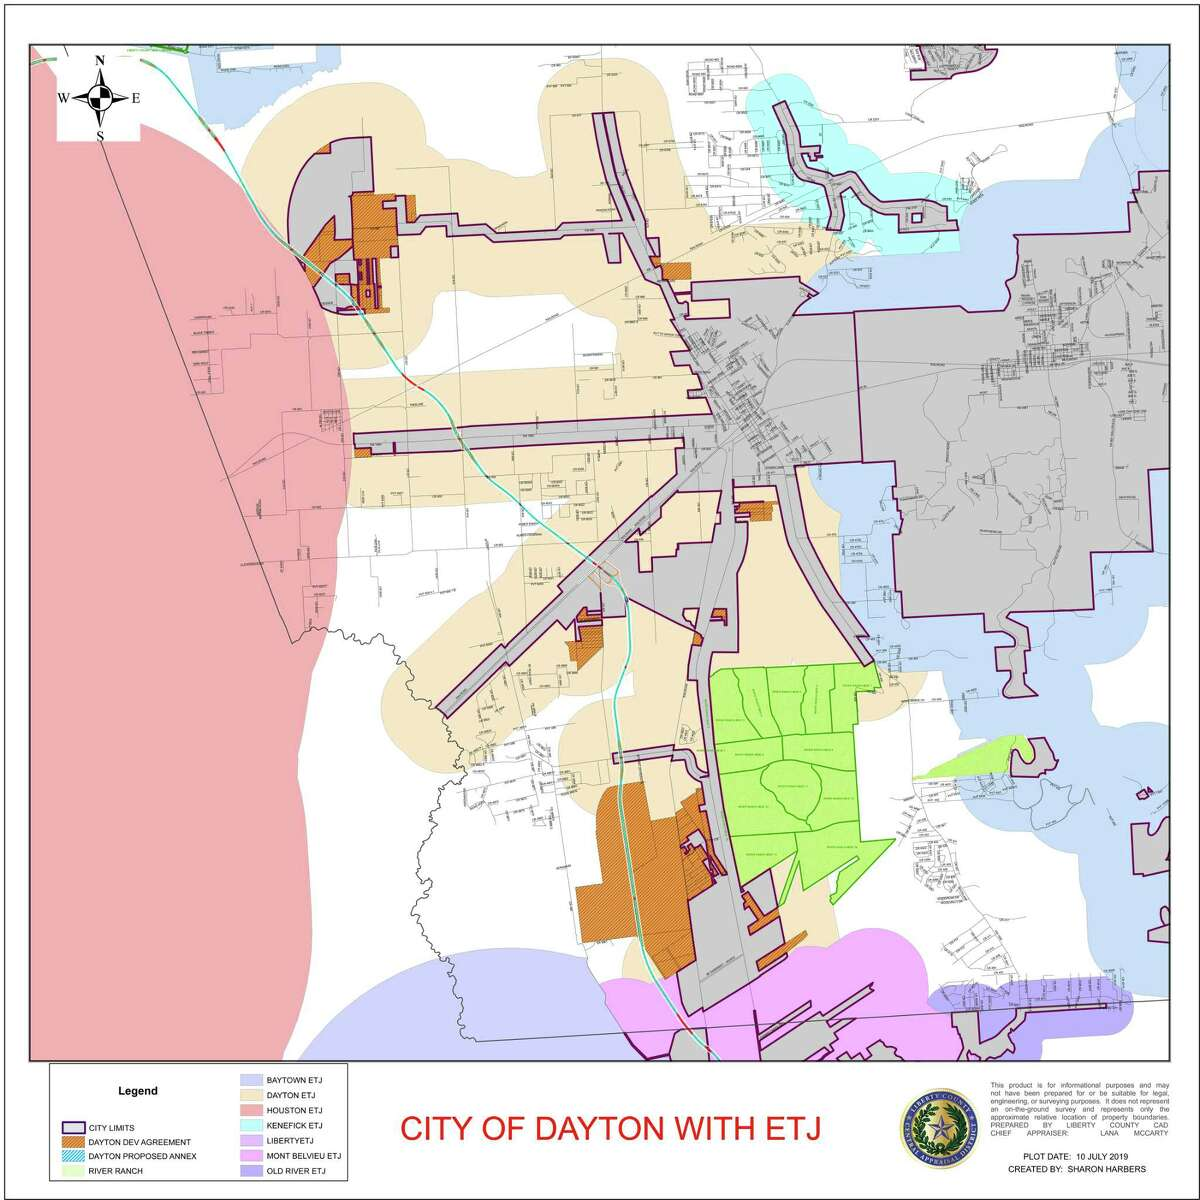 This map from the city of Dayton Development office shows the location of the mammoth master-planned community set for a groundbreaking on Sept. 10 at 11 a.m.